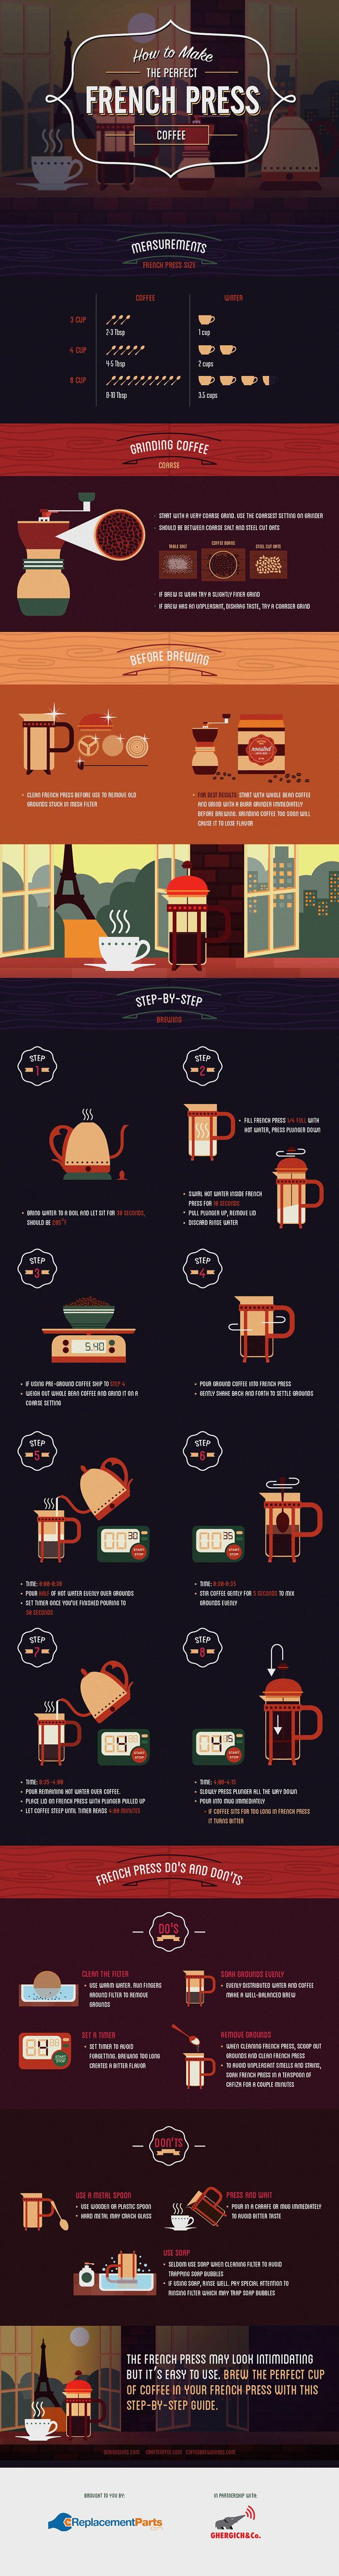 Kaffeezubereitung French Press How To Make The Perfect French Press Coffee Coffee Coffee